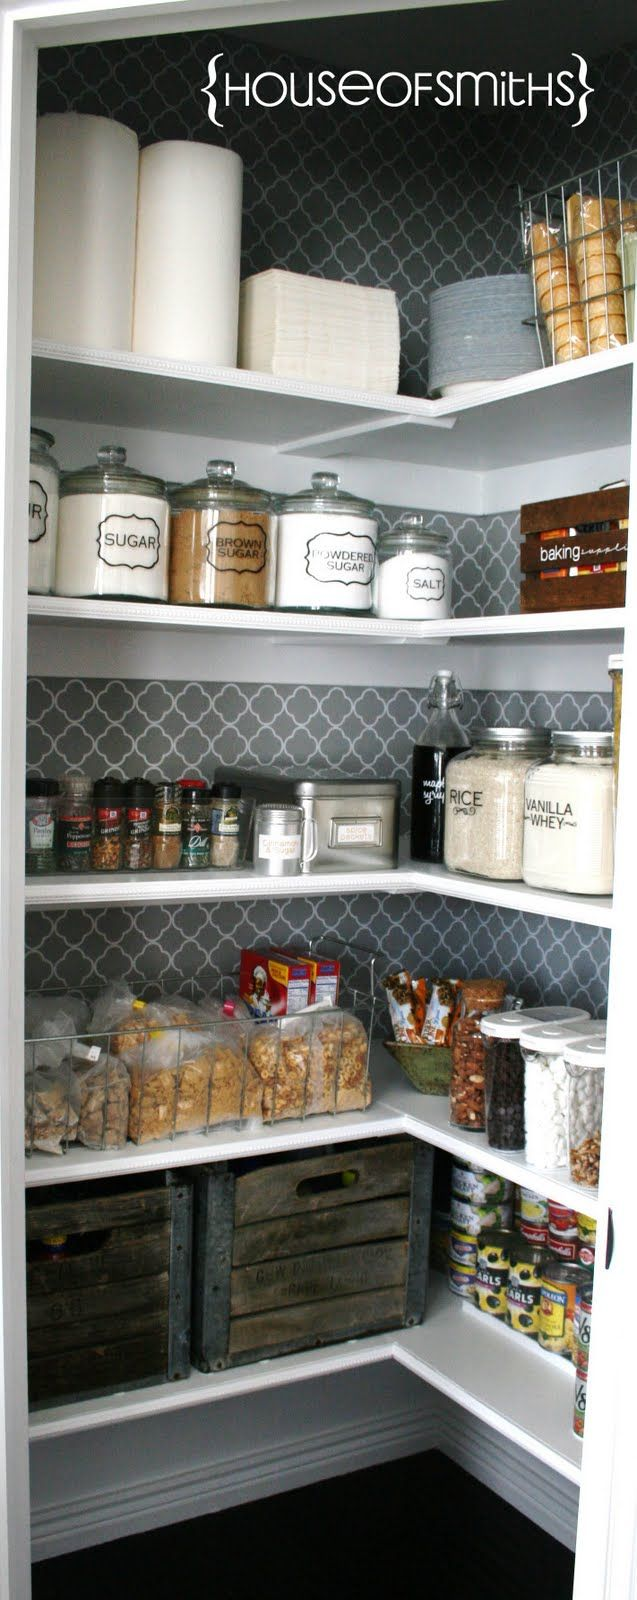 I would smile each time I opened my pantry